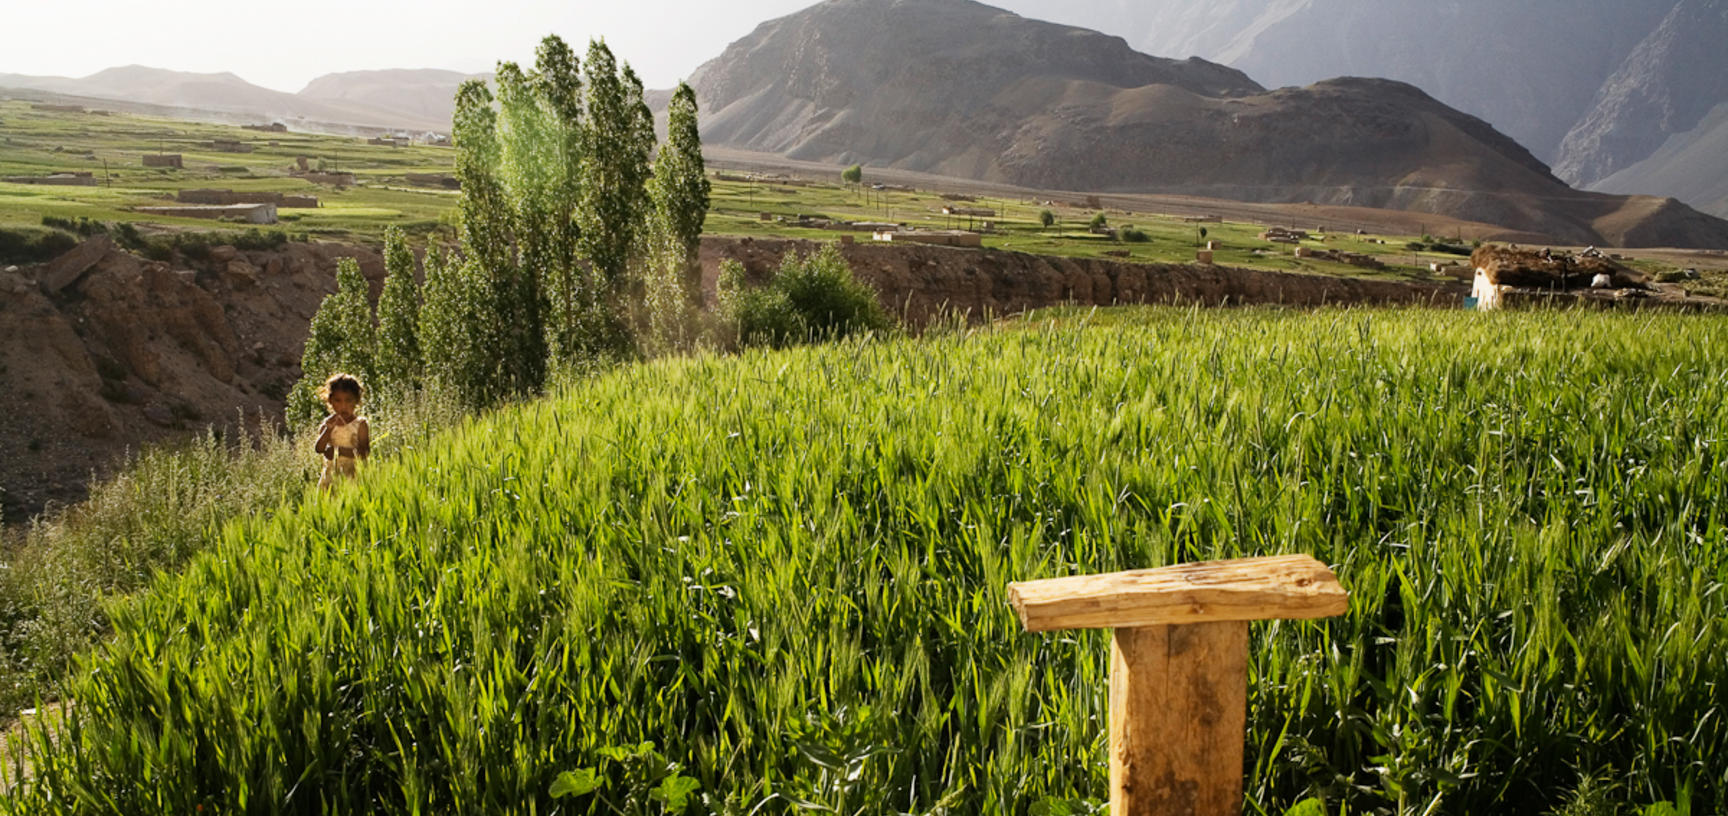 A field of wheat, irrigated by snow-melt from the nearby mountains, grows in front of a Pamiri house. Roshorv, Tajikistan. Photograph by Carolyn Drake. July 2008.